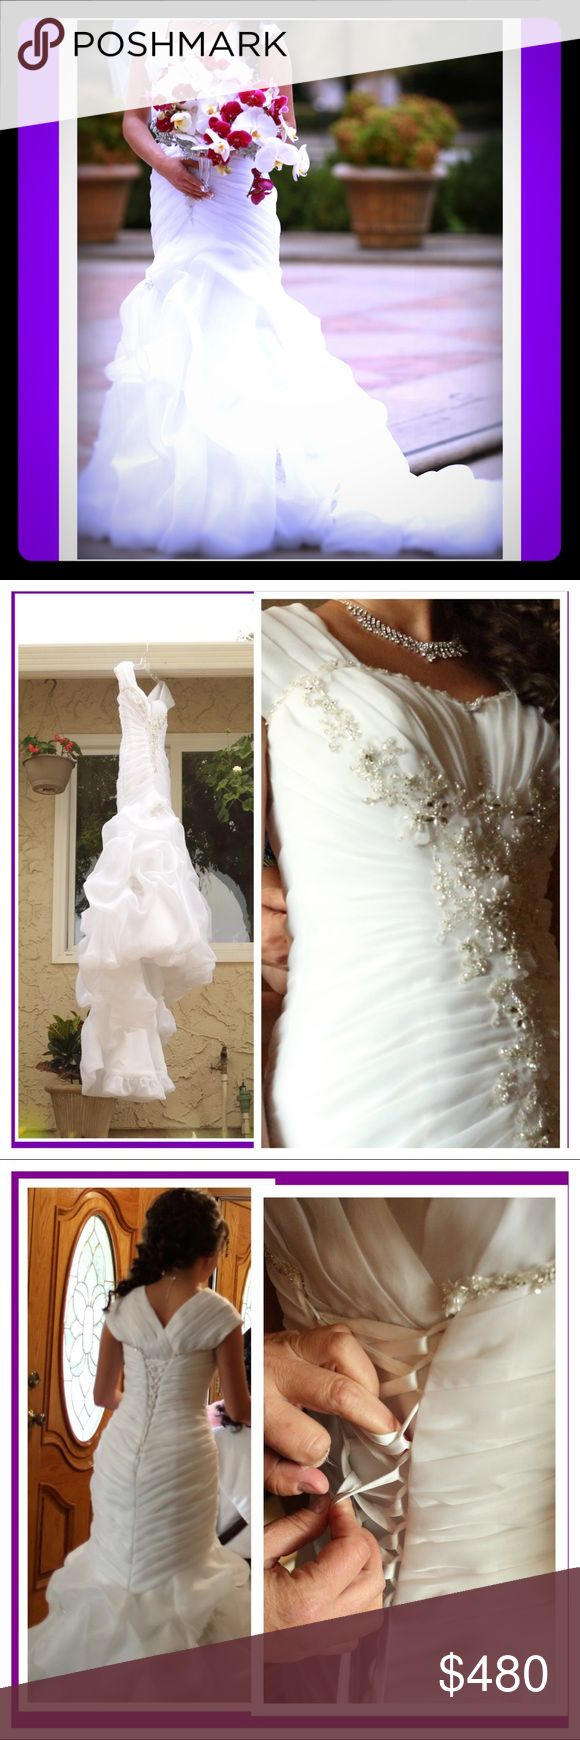 Impression Bridal Wedding Dress The dress is in good condition; dry cleaned. Impression Bridal Dresses Wedding